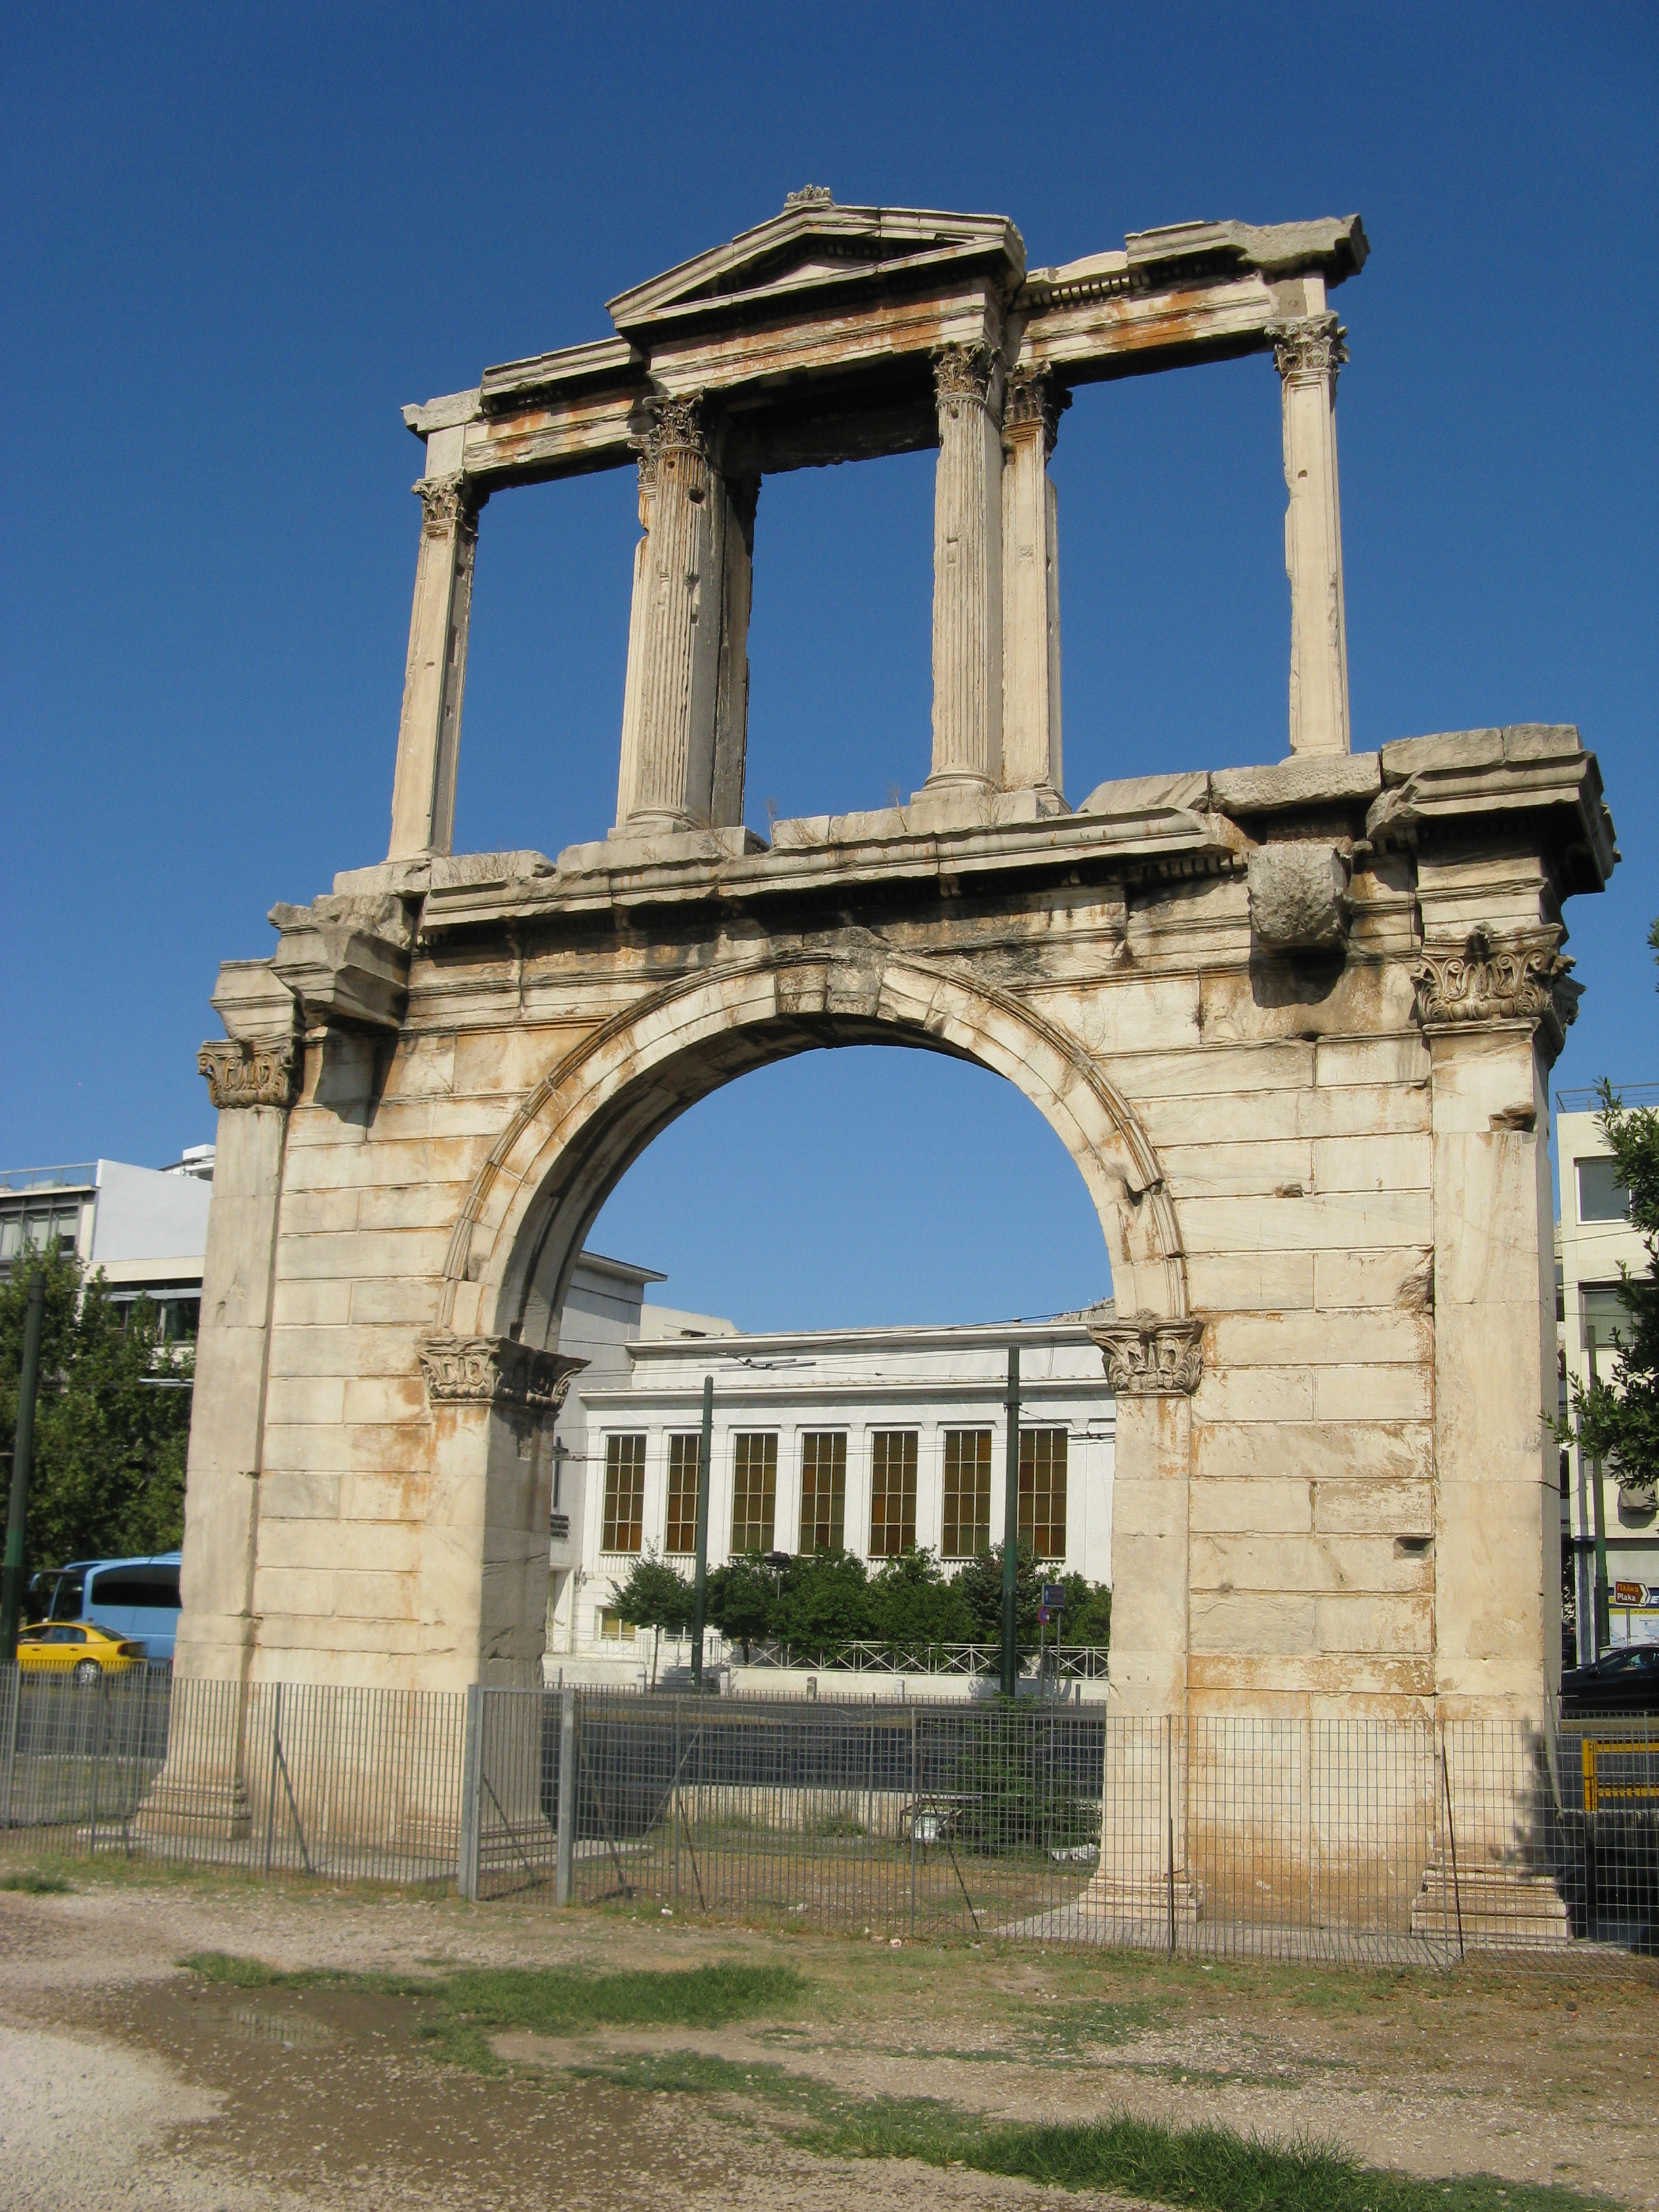 File:Hadrians Arch01.jpg - Wikimedia Commons